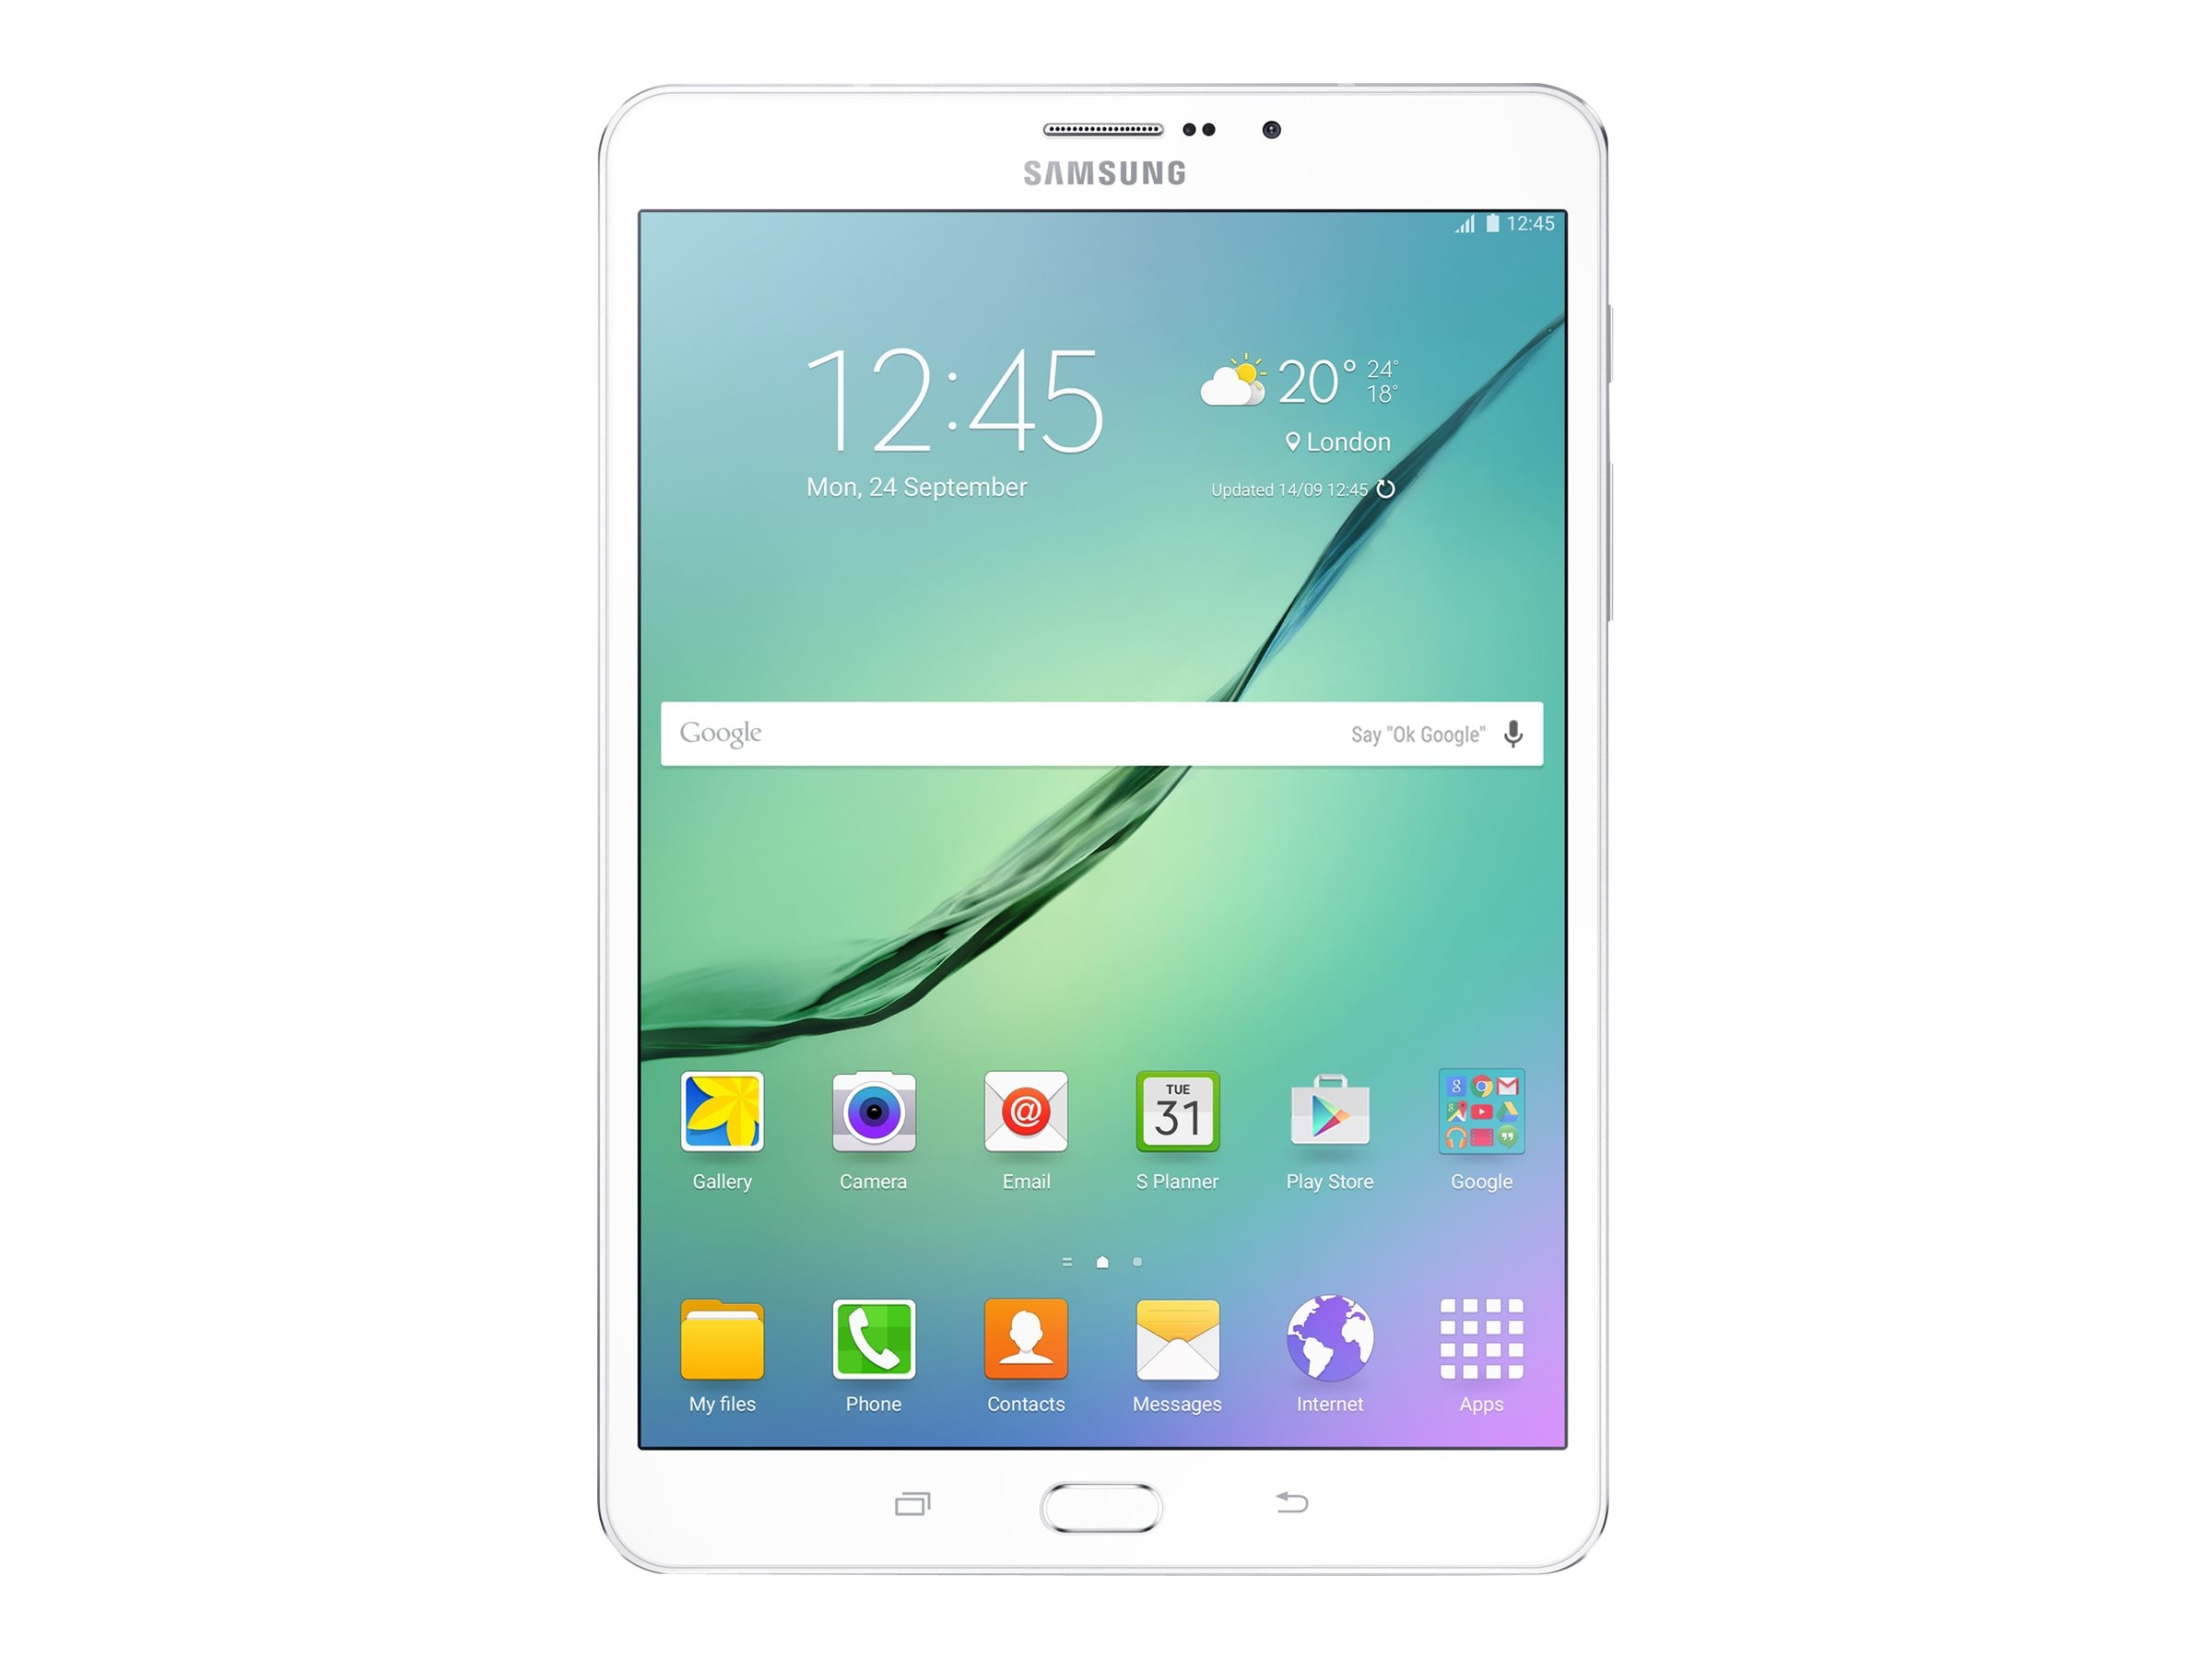 Samsung Galaxy Tab S2 32GB WiFi 8, White, SM-T710NZWEXAR, 27719120, Tablets